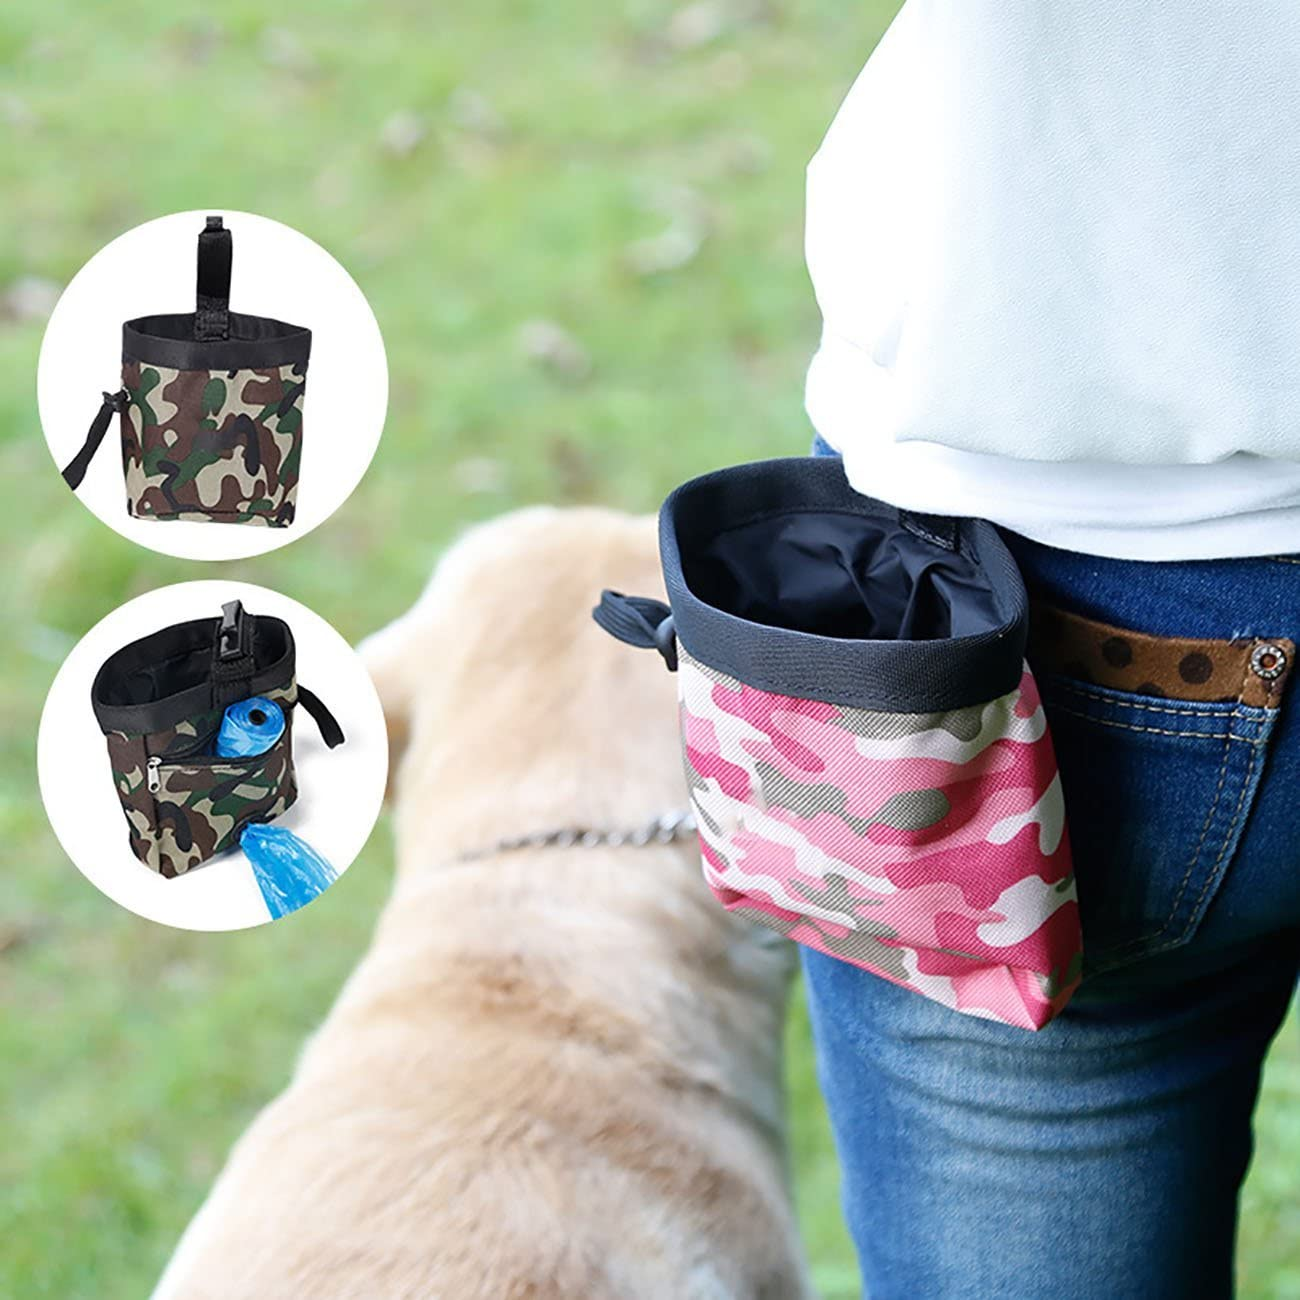 Uheng Dog Treat Training Pouch C Built-In Poop Bag Dispenser – for Carries Pet Toys, Kibble, Treats, Pet Snack Bag C Clip on Waist, Key